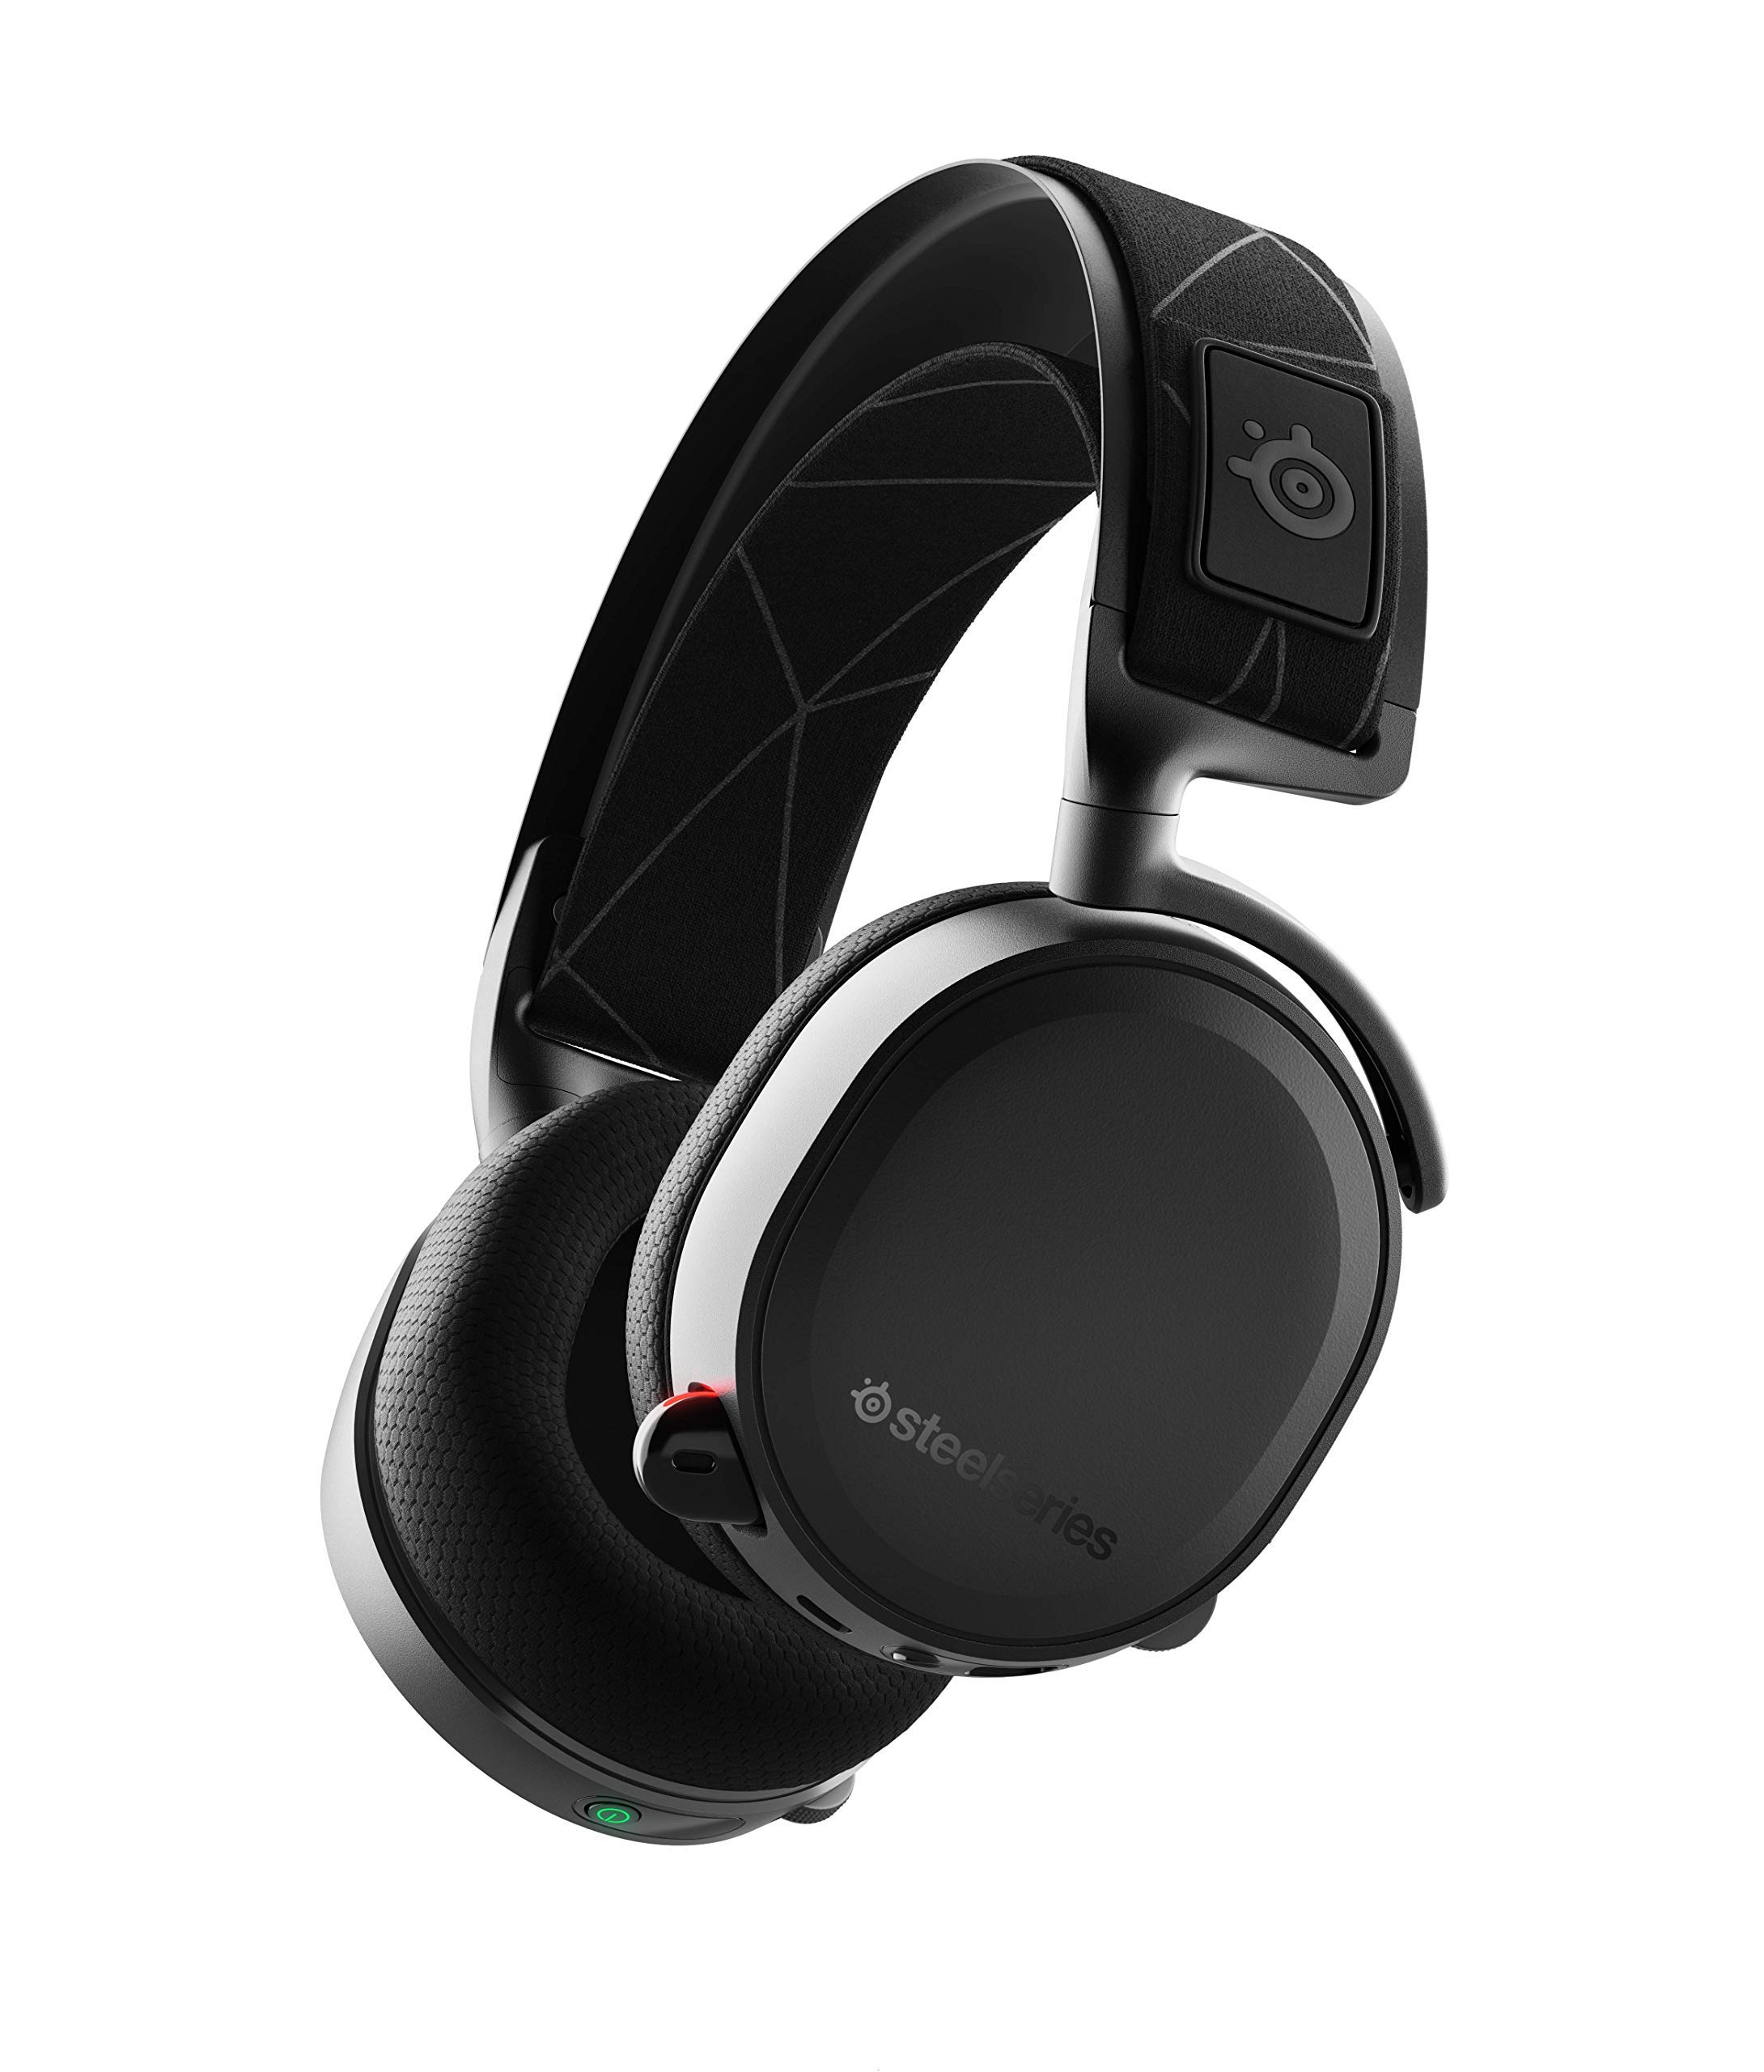 Arctis 7 Wiress DTS 7.1 Surround for PC Gaming Headphone White (Certified Refurbished)